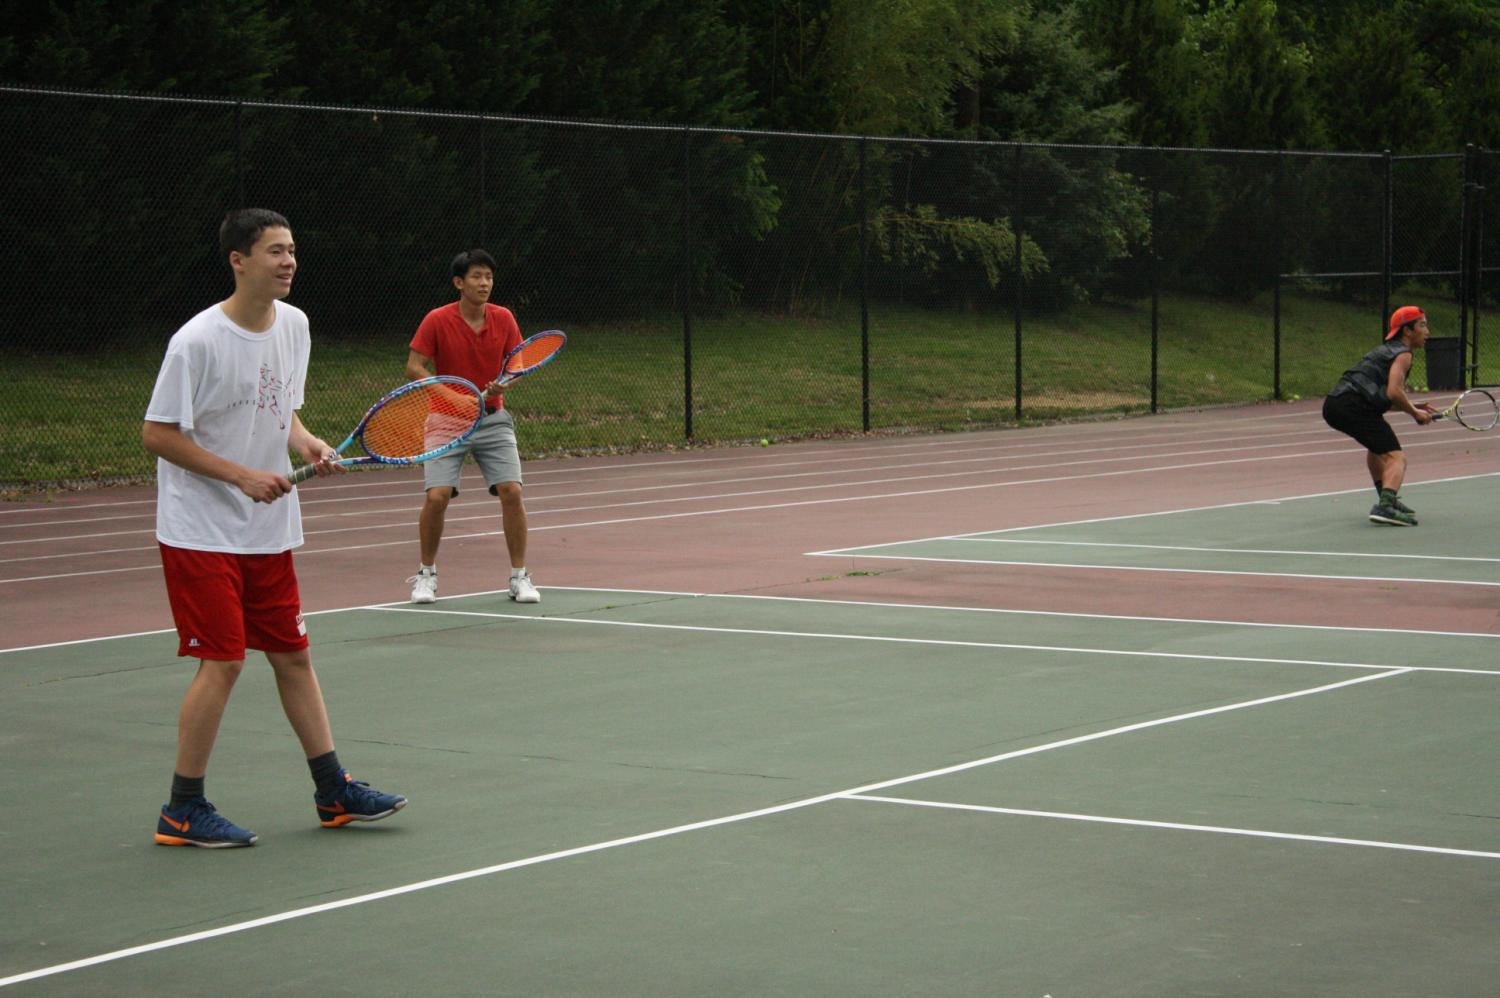 Freshman William Vroom and Senior Ruyan Zhang practice ahead of the state championship. Hard work and practice makes quality tennis players who can win championships.